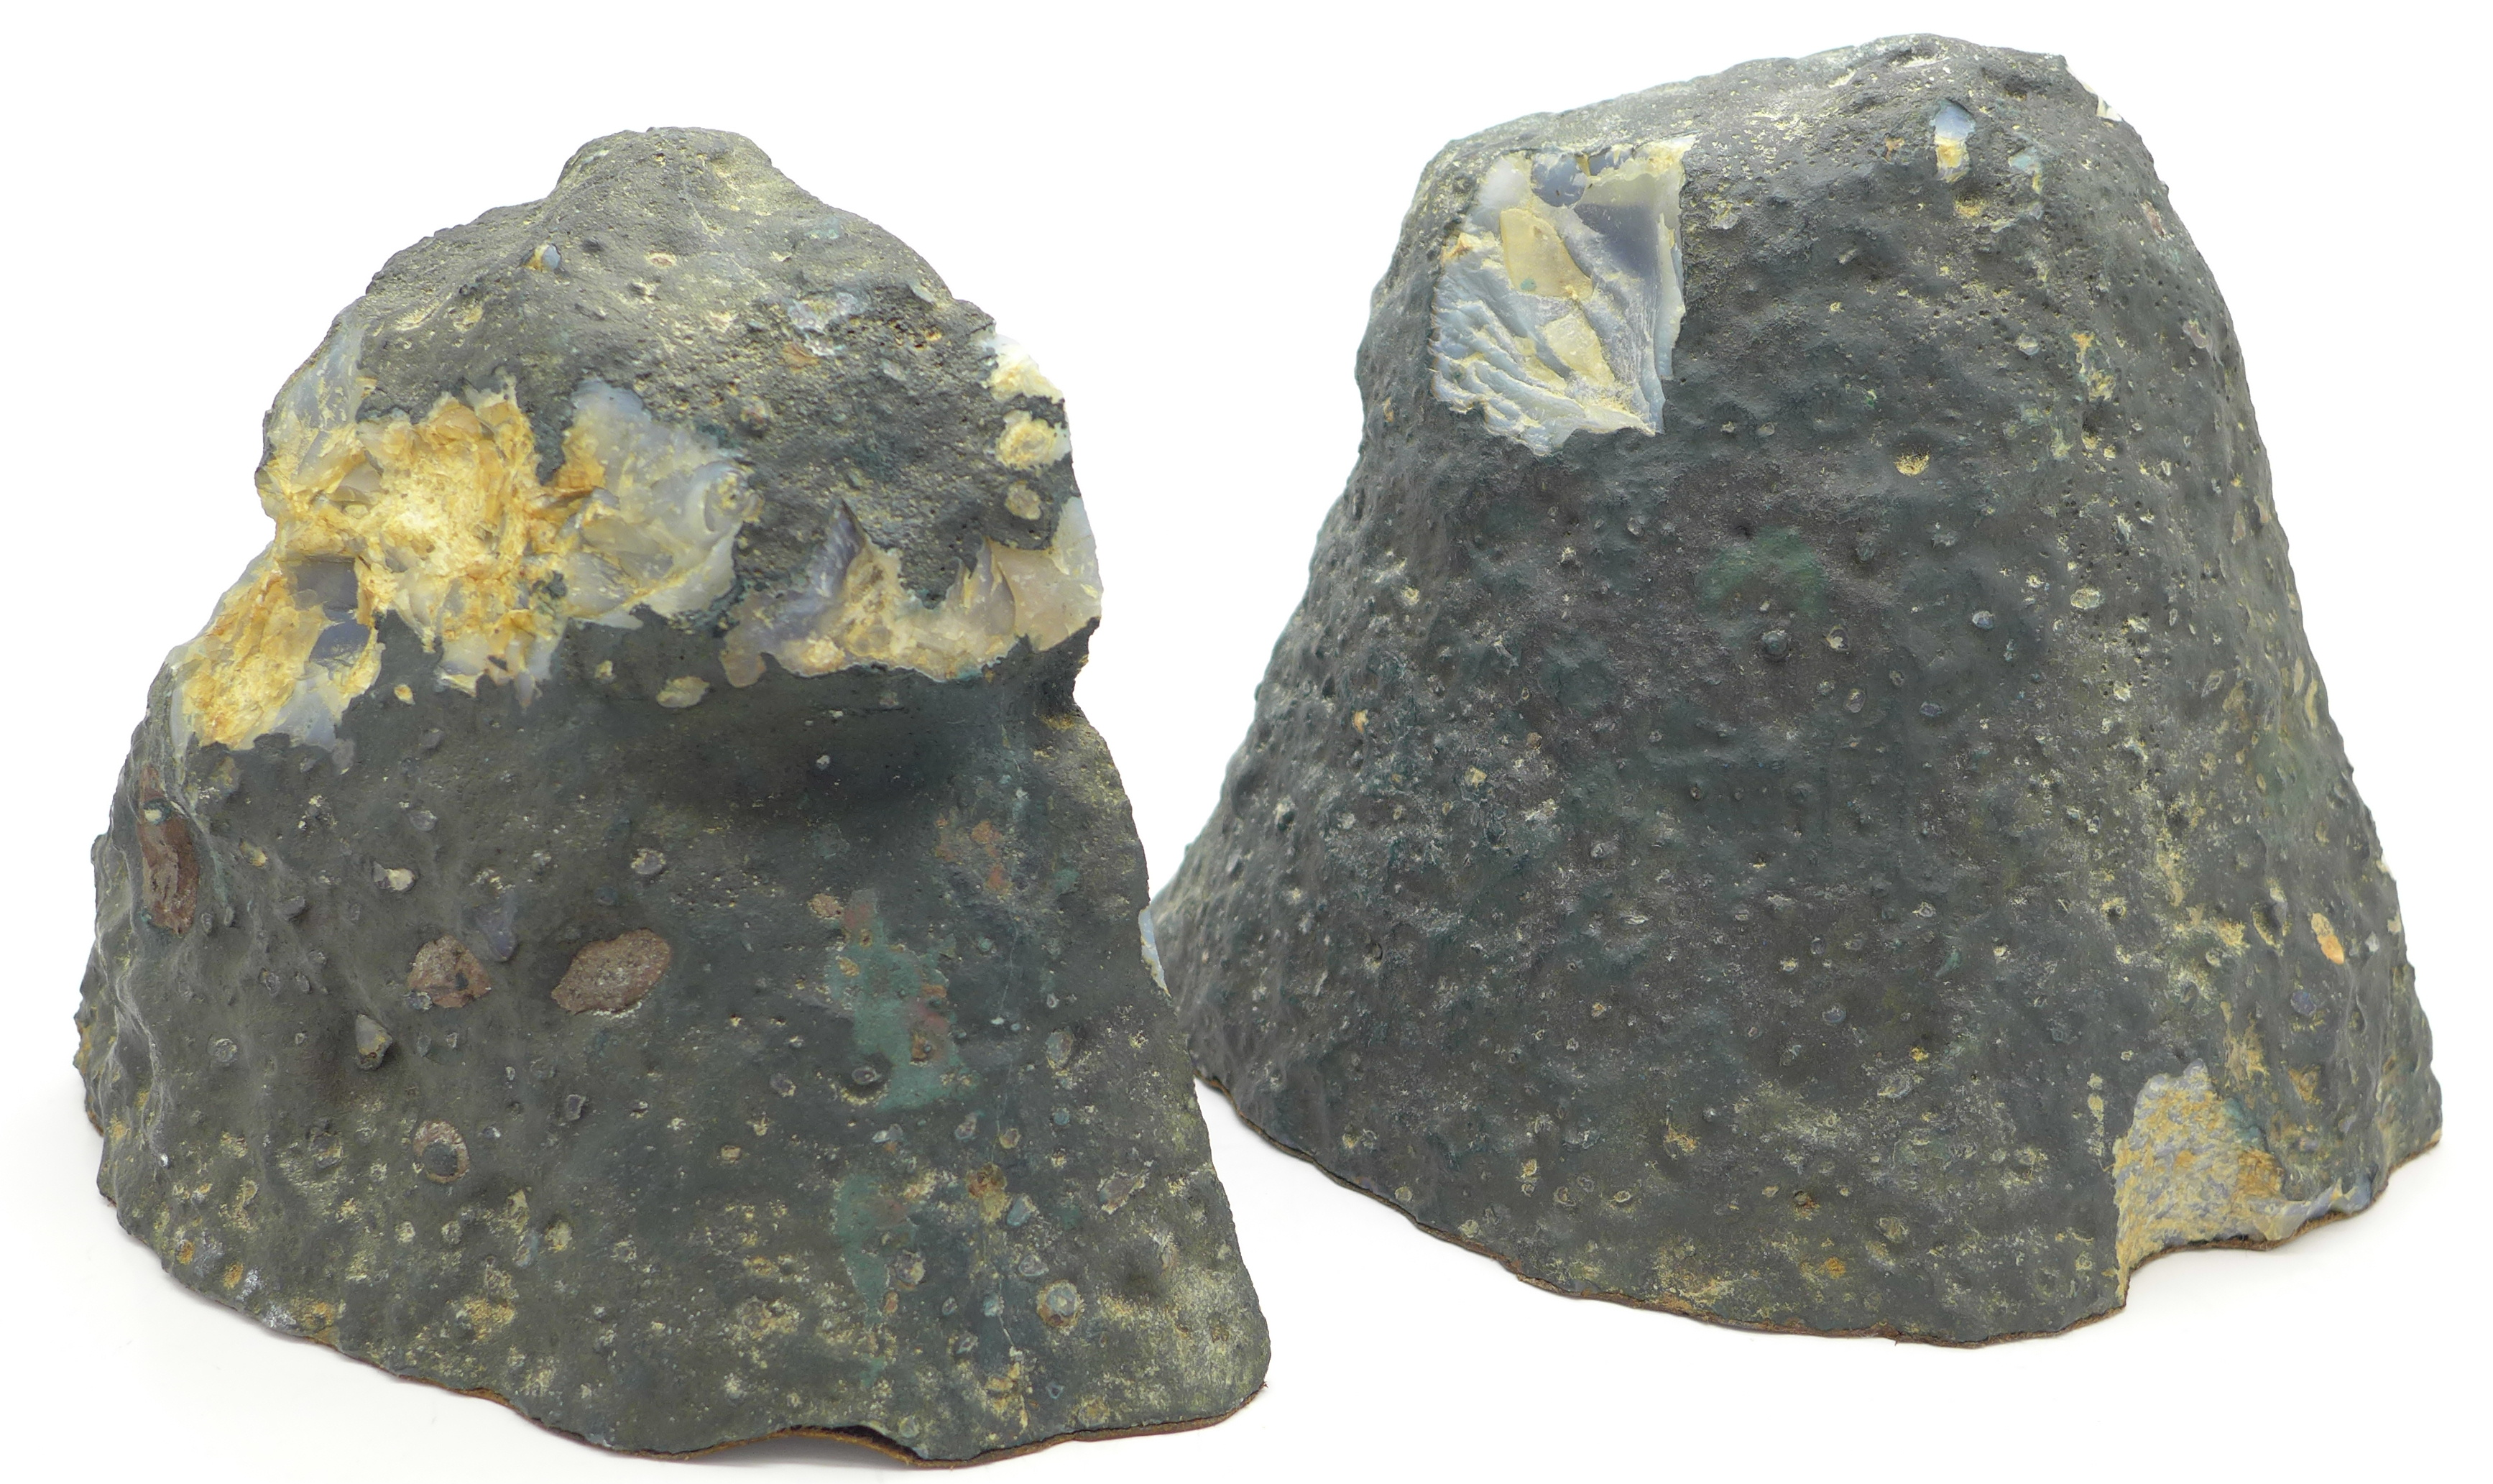 Lot 673 - A pair of mineral sample geode bookends, 5.